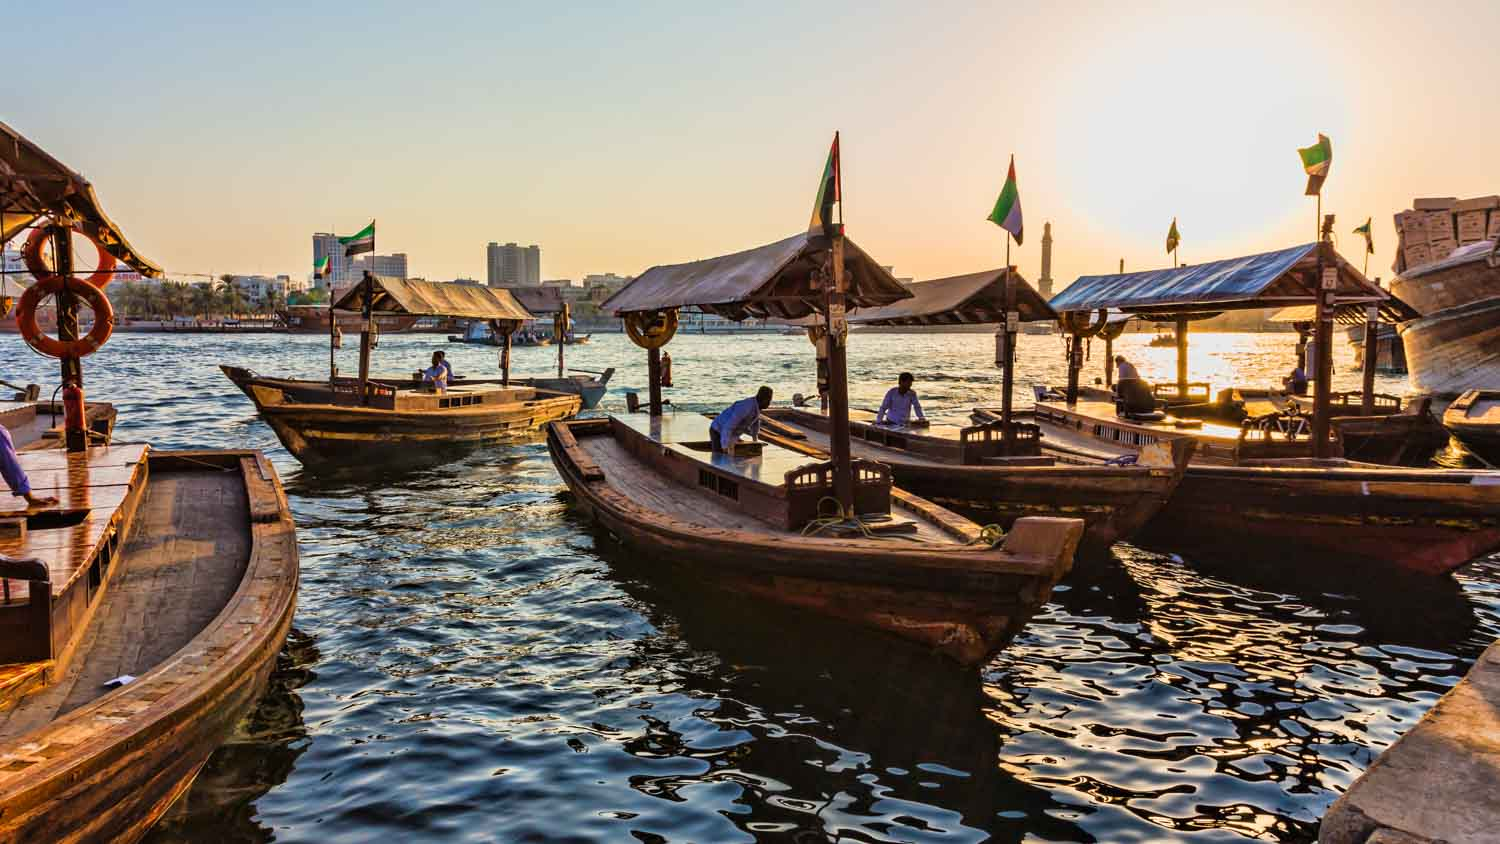 Sunny with Occasional Rain | Dubai Creek